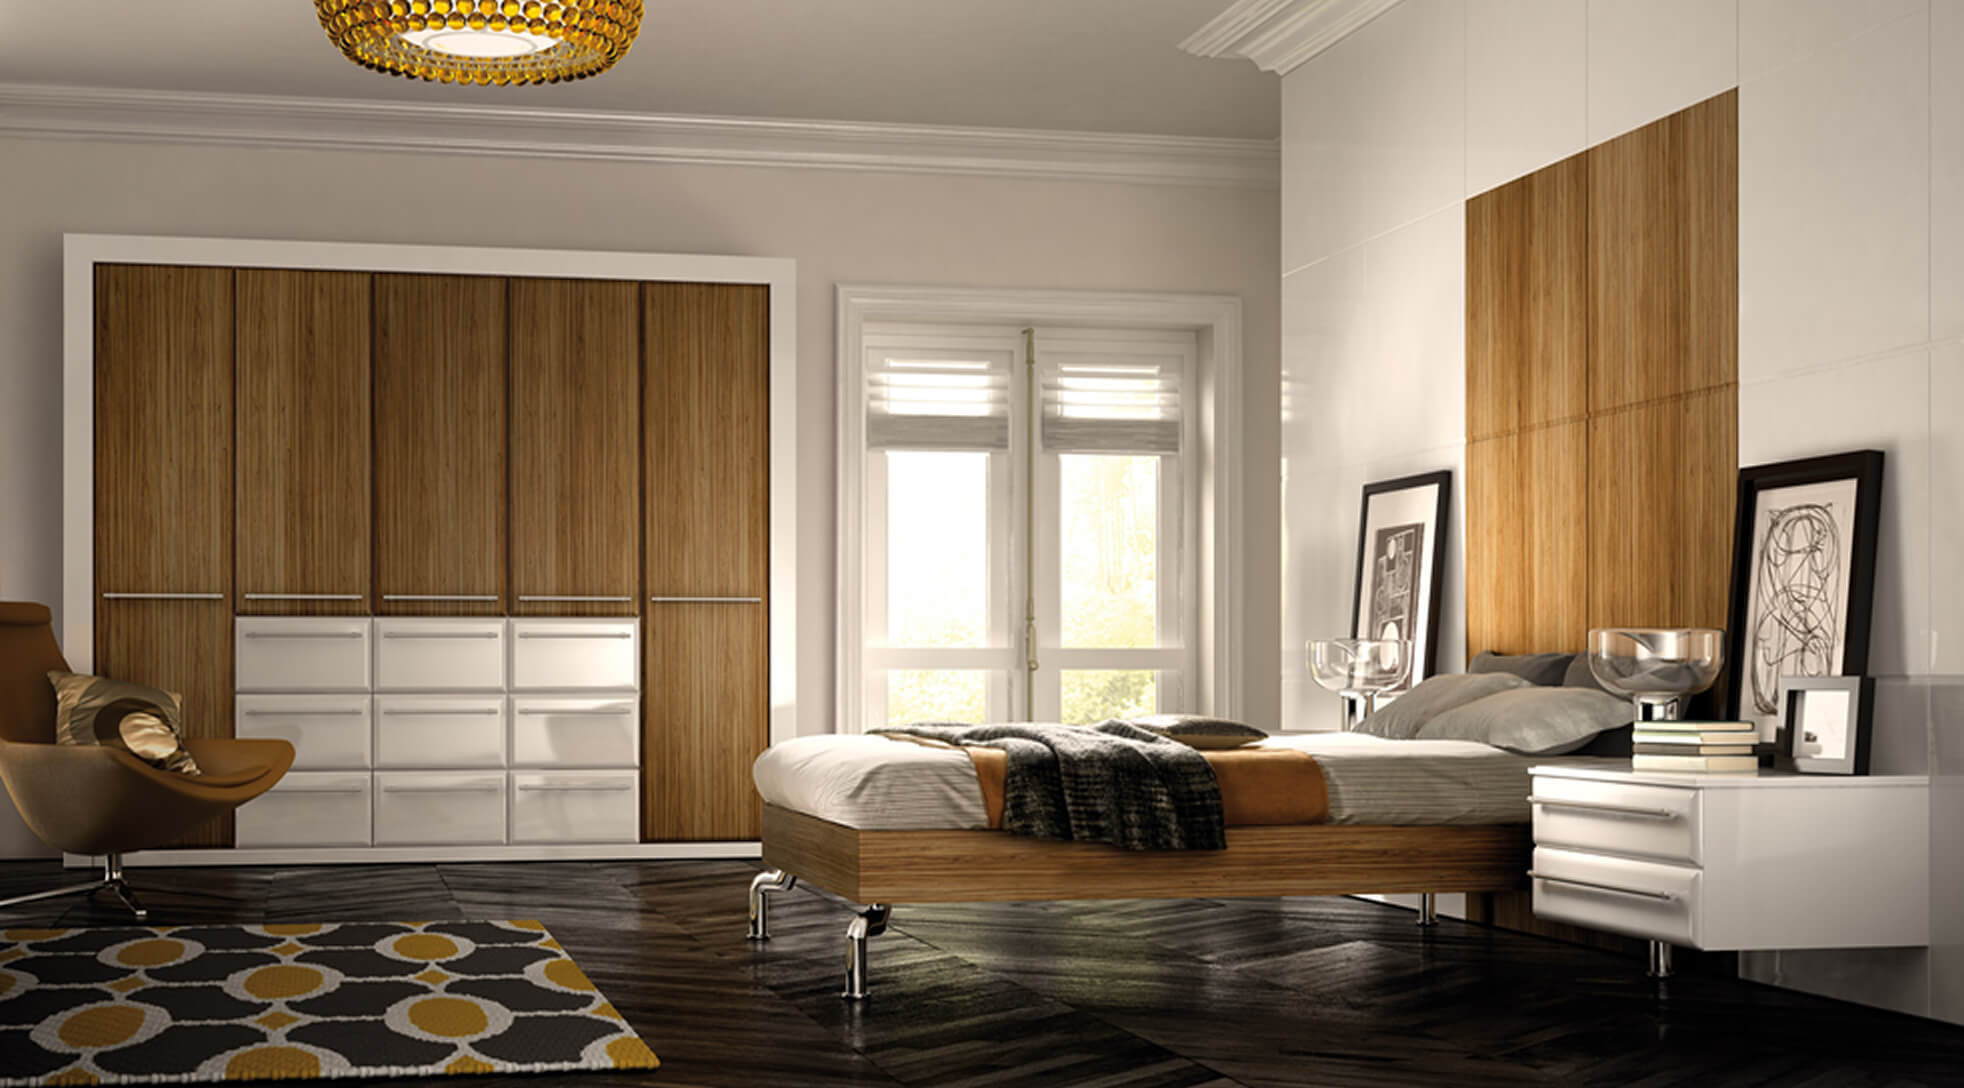 Bedroom Designs - Valencia sambesi & white gloss supplied by Superior Cabinets